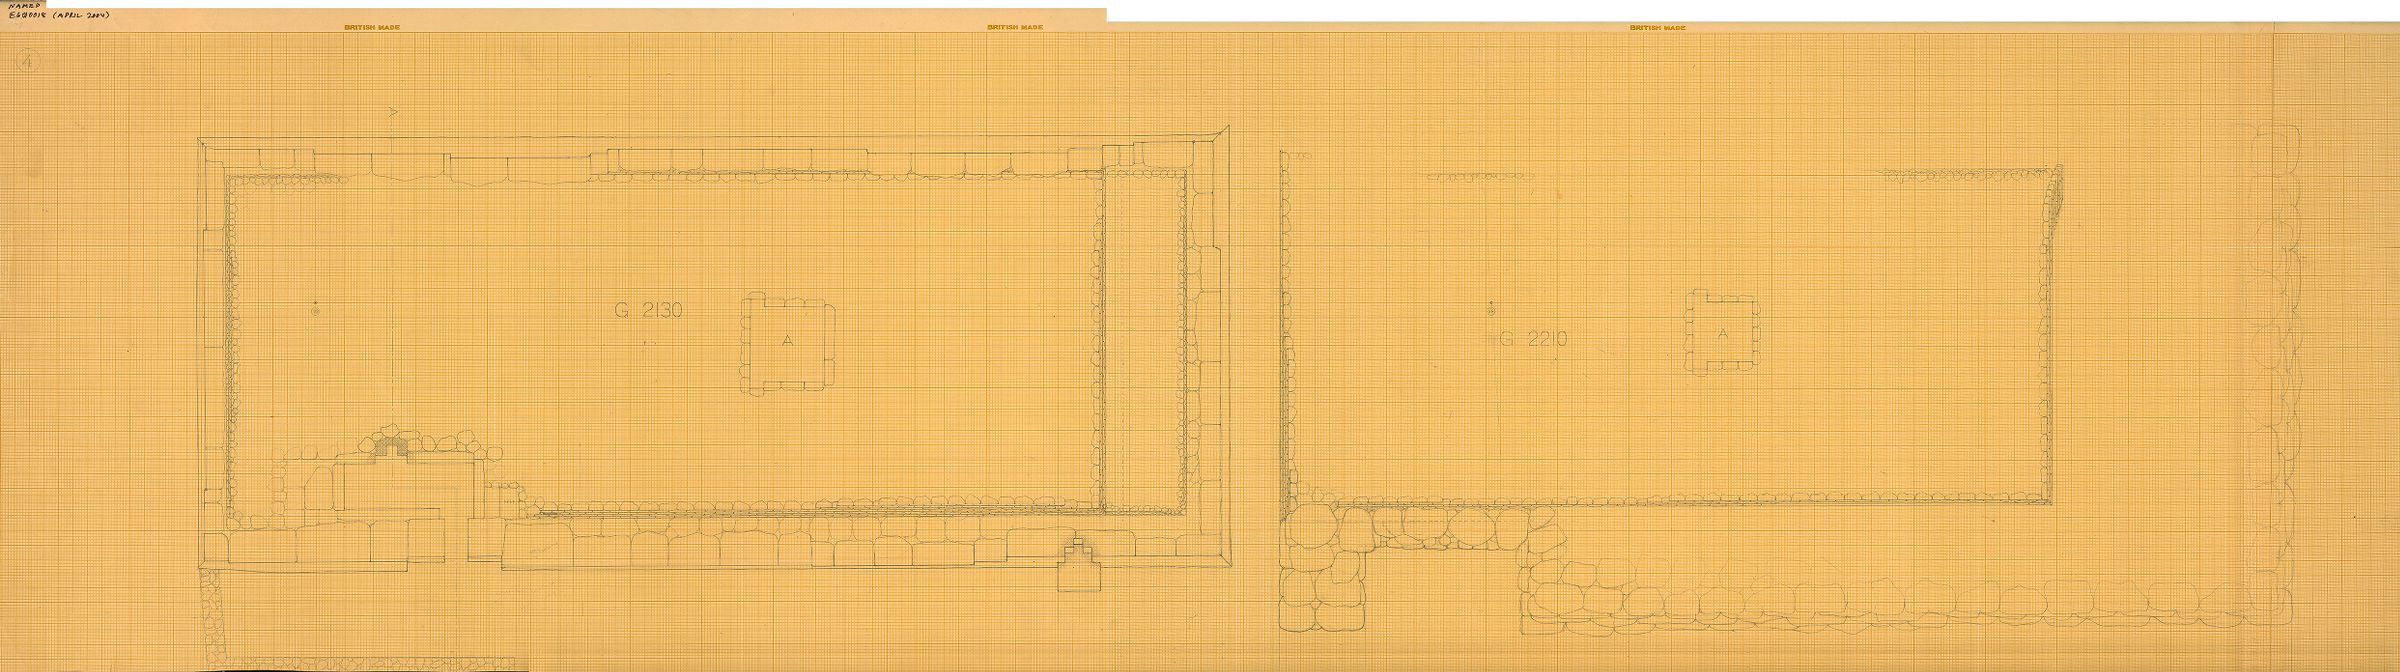 Maps and plans: Plan of G 2130 and G 2210